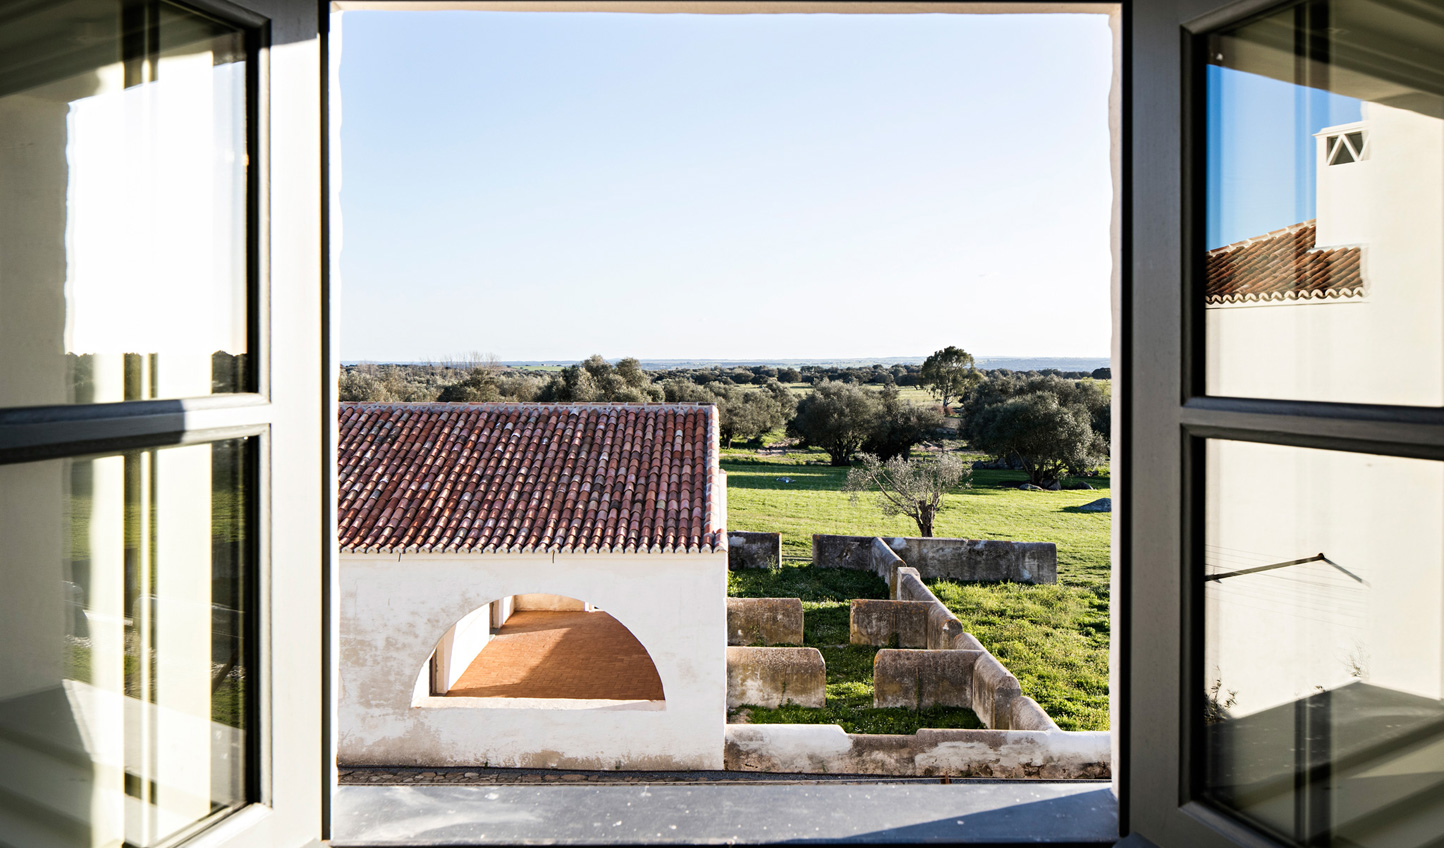 Wake up to picturesque views across the Alentejo